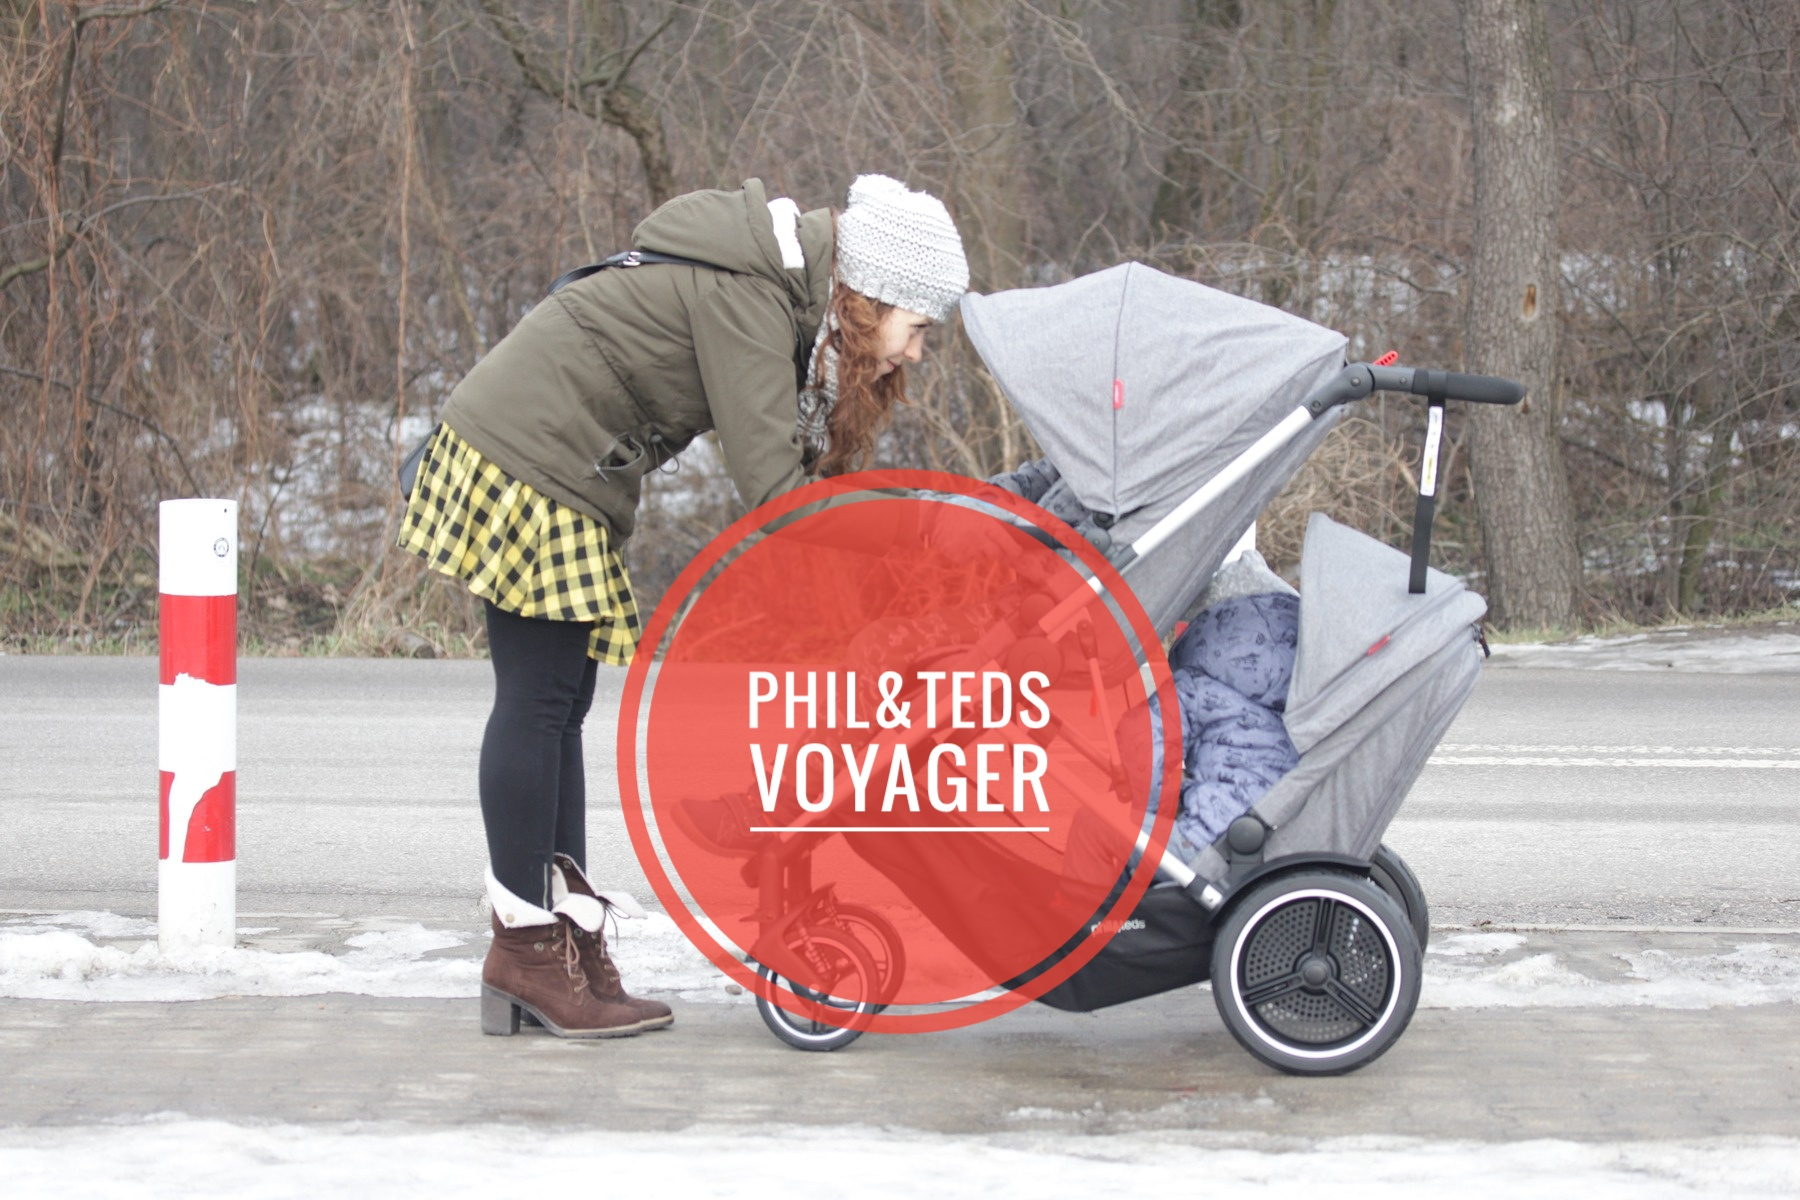 Phil&Teds Voyager